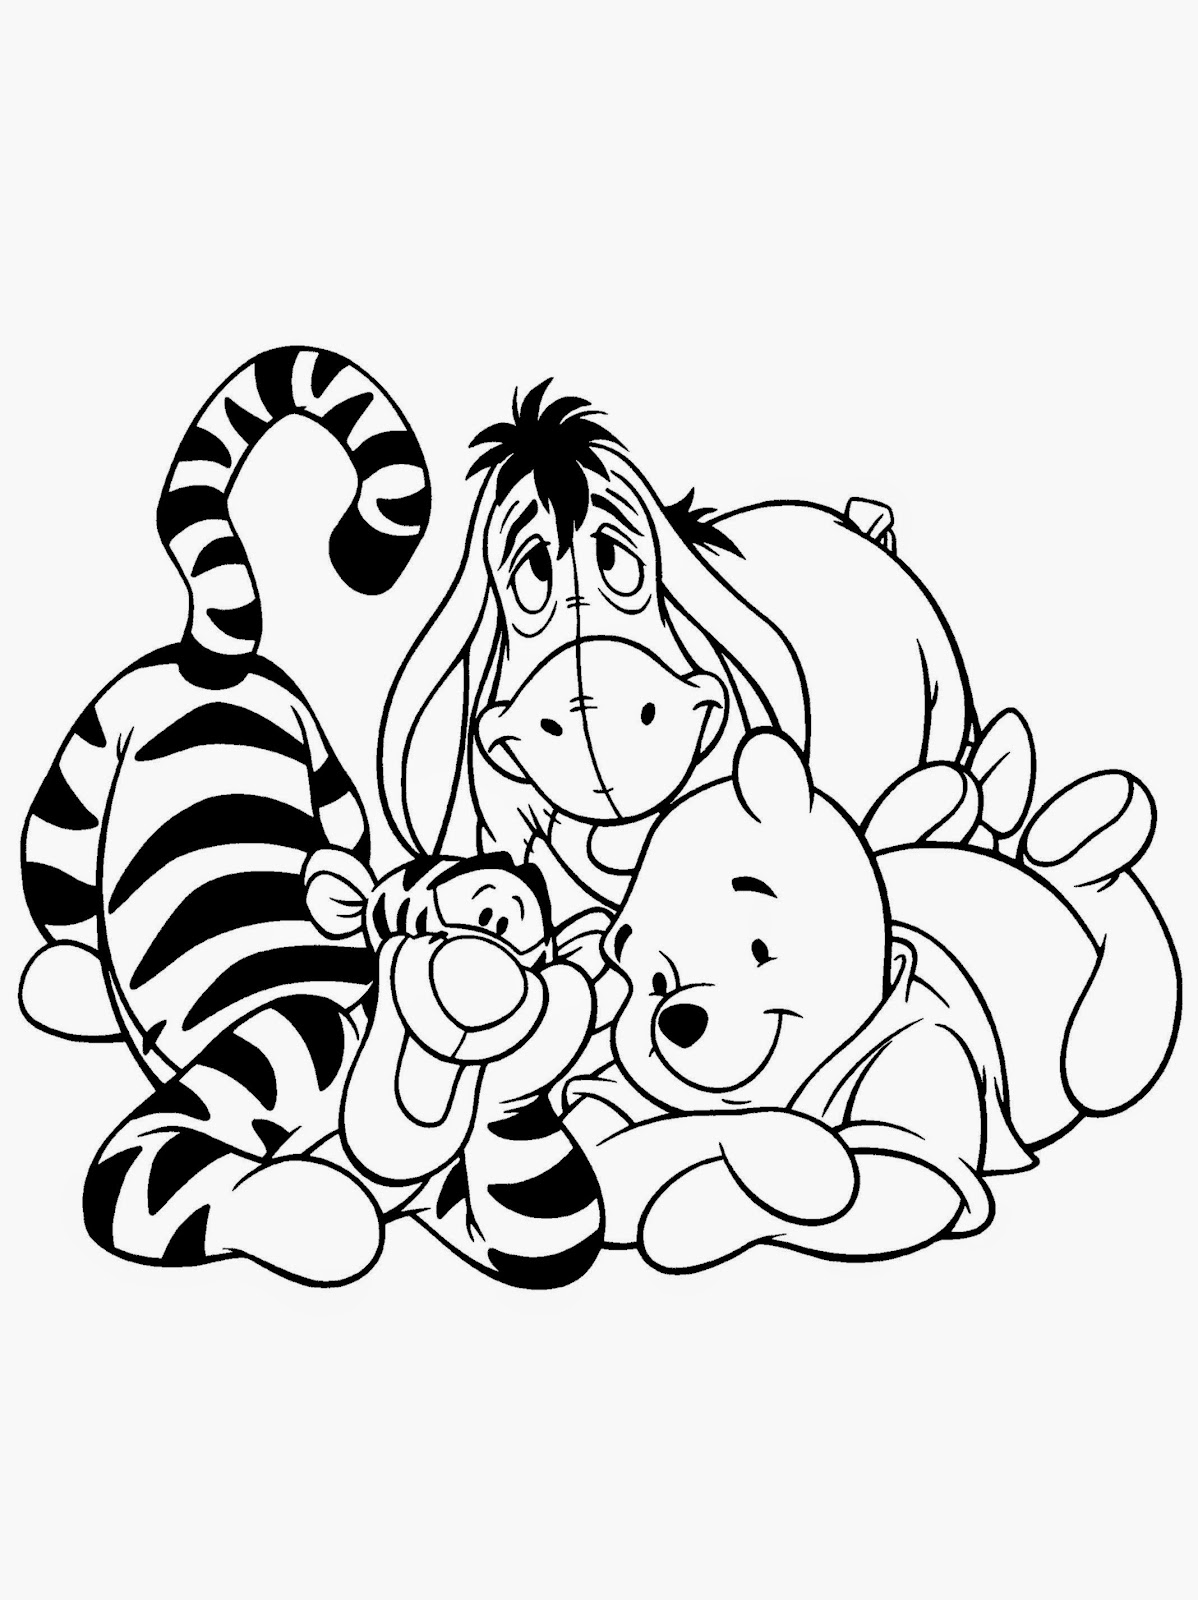 winny the poo coloring pages - photo#17